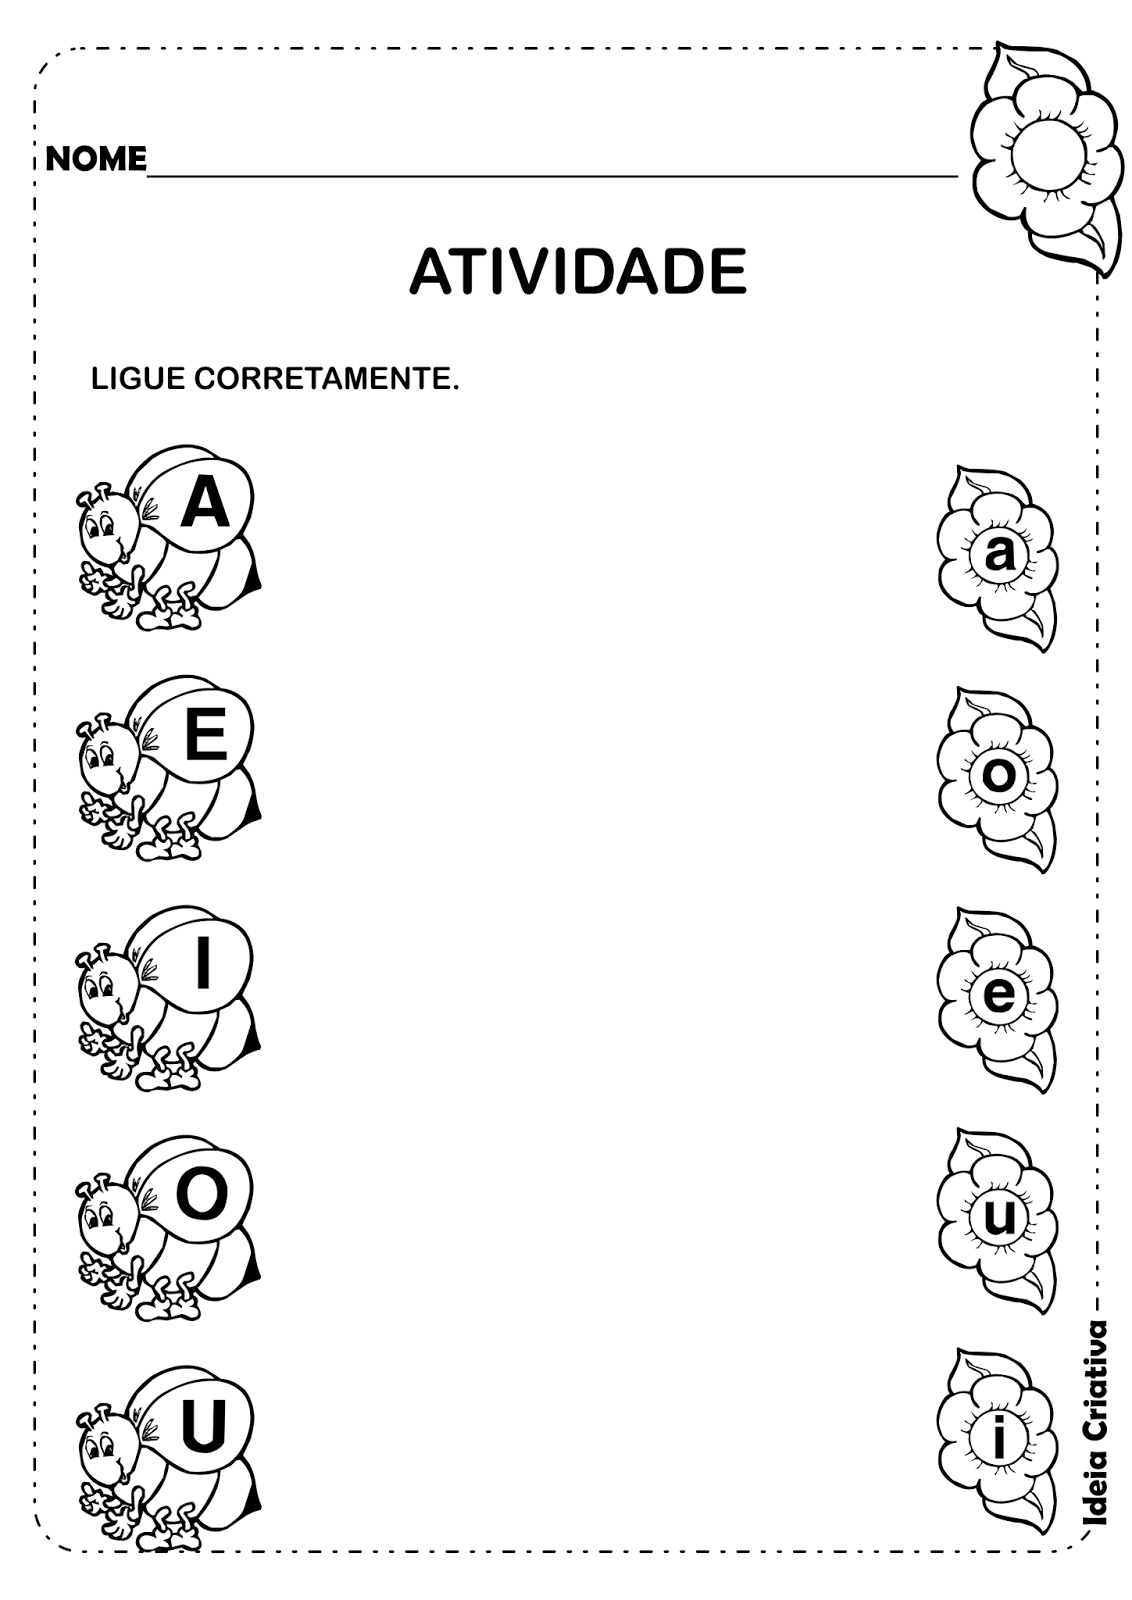 Worksheet | ABECEDARIO PALABRAS | Pinterest | Kind